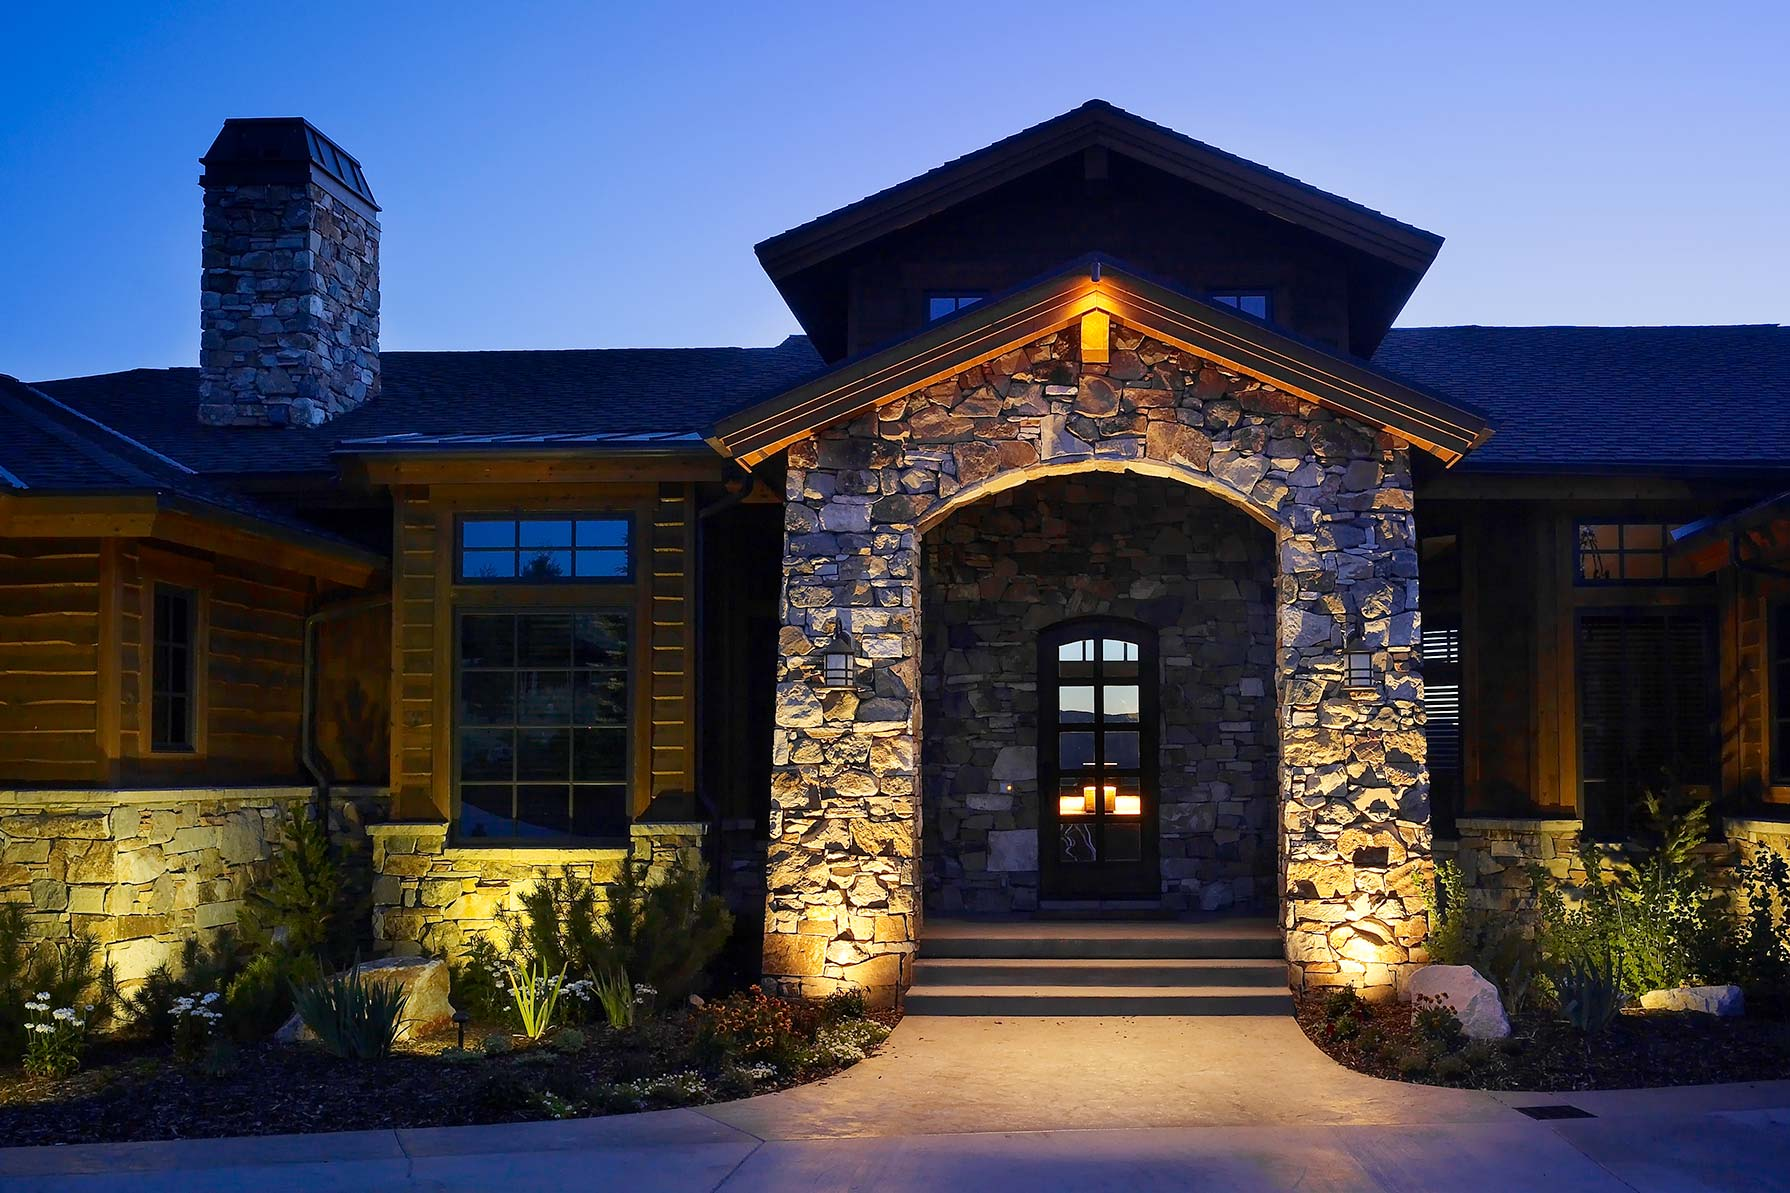 Landscape Lighting Pro of Utah | Salt Lake City Park City Utah on custom home draper utah, lighting design utah, interior design utah,